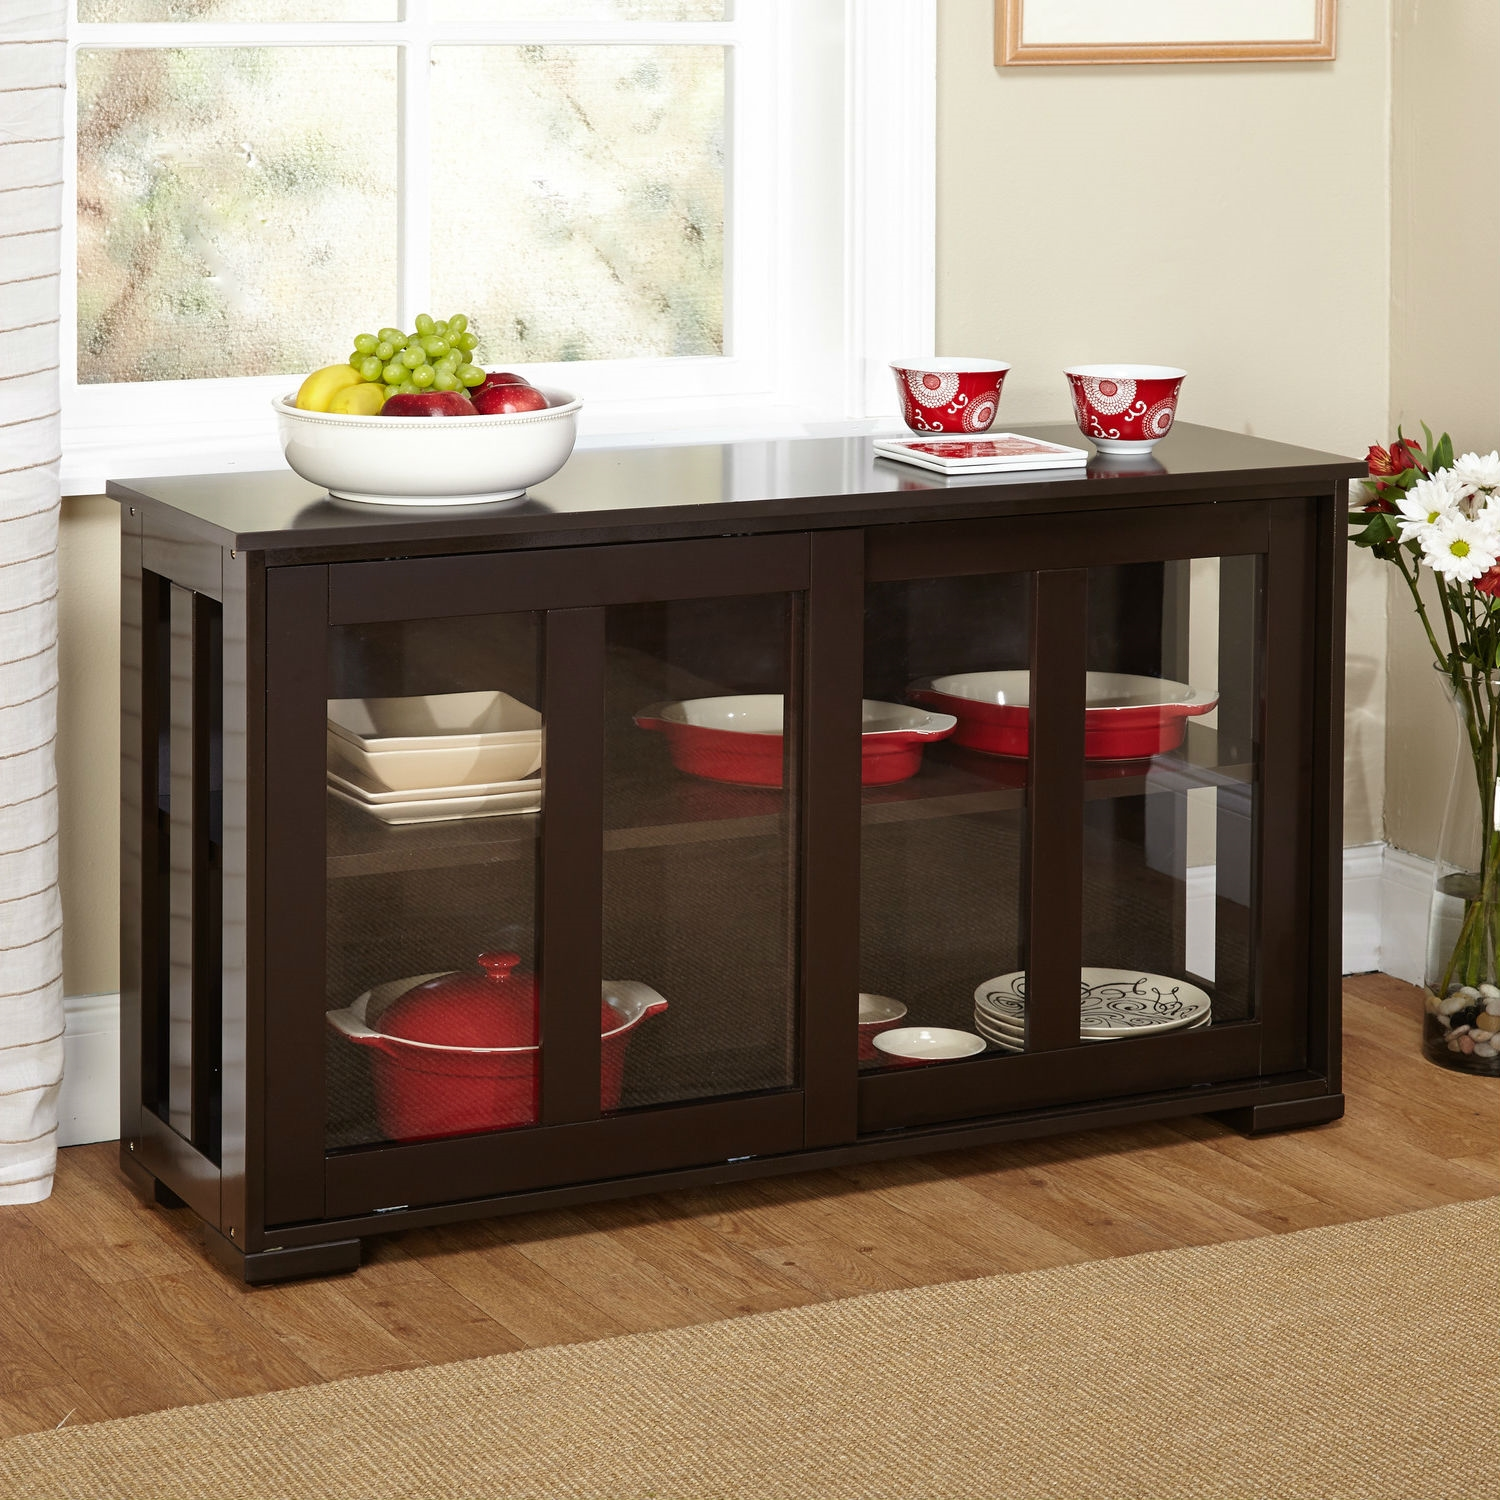 Espresso Sideboard Buffet Dining Kitchen Cabinet with 2 ...